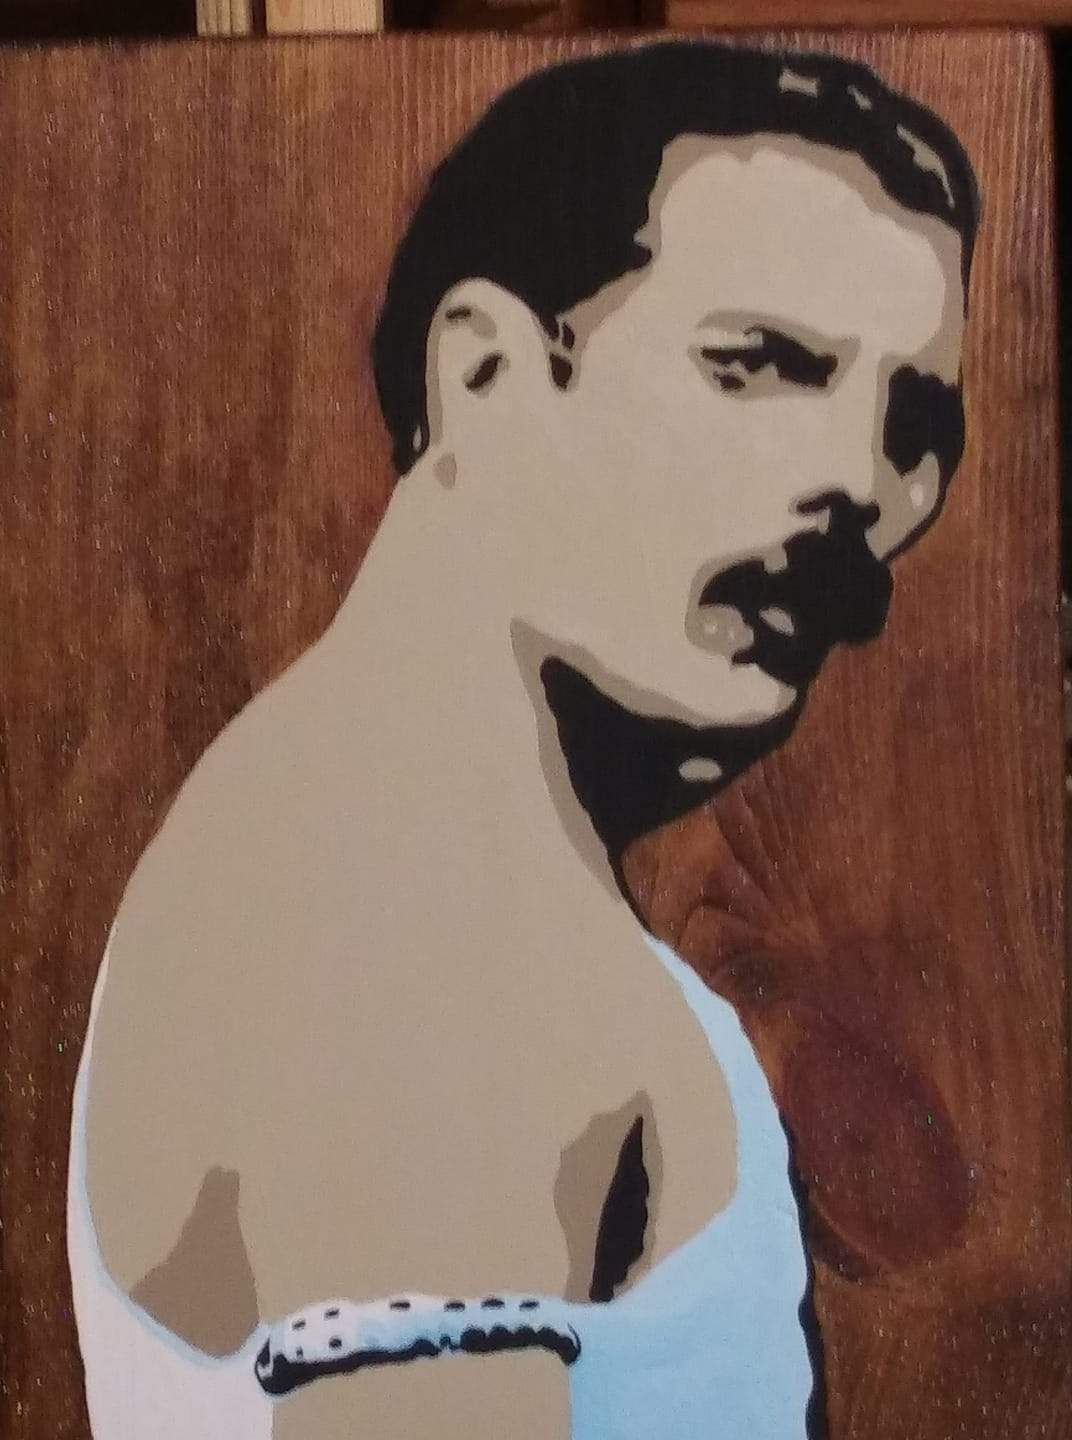 Freddie Mercury Acrylics on Wood Hand painted Pop Art